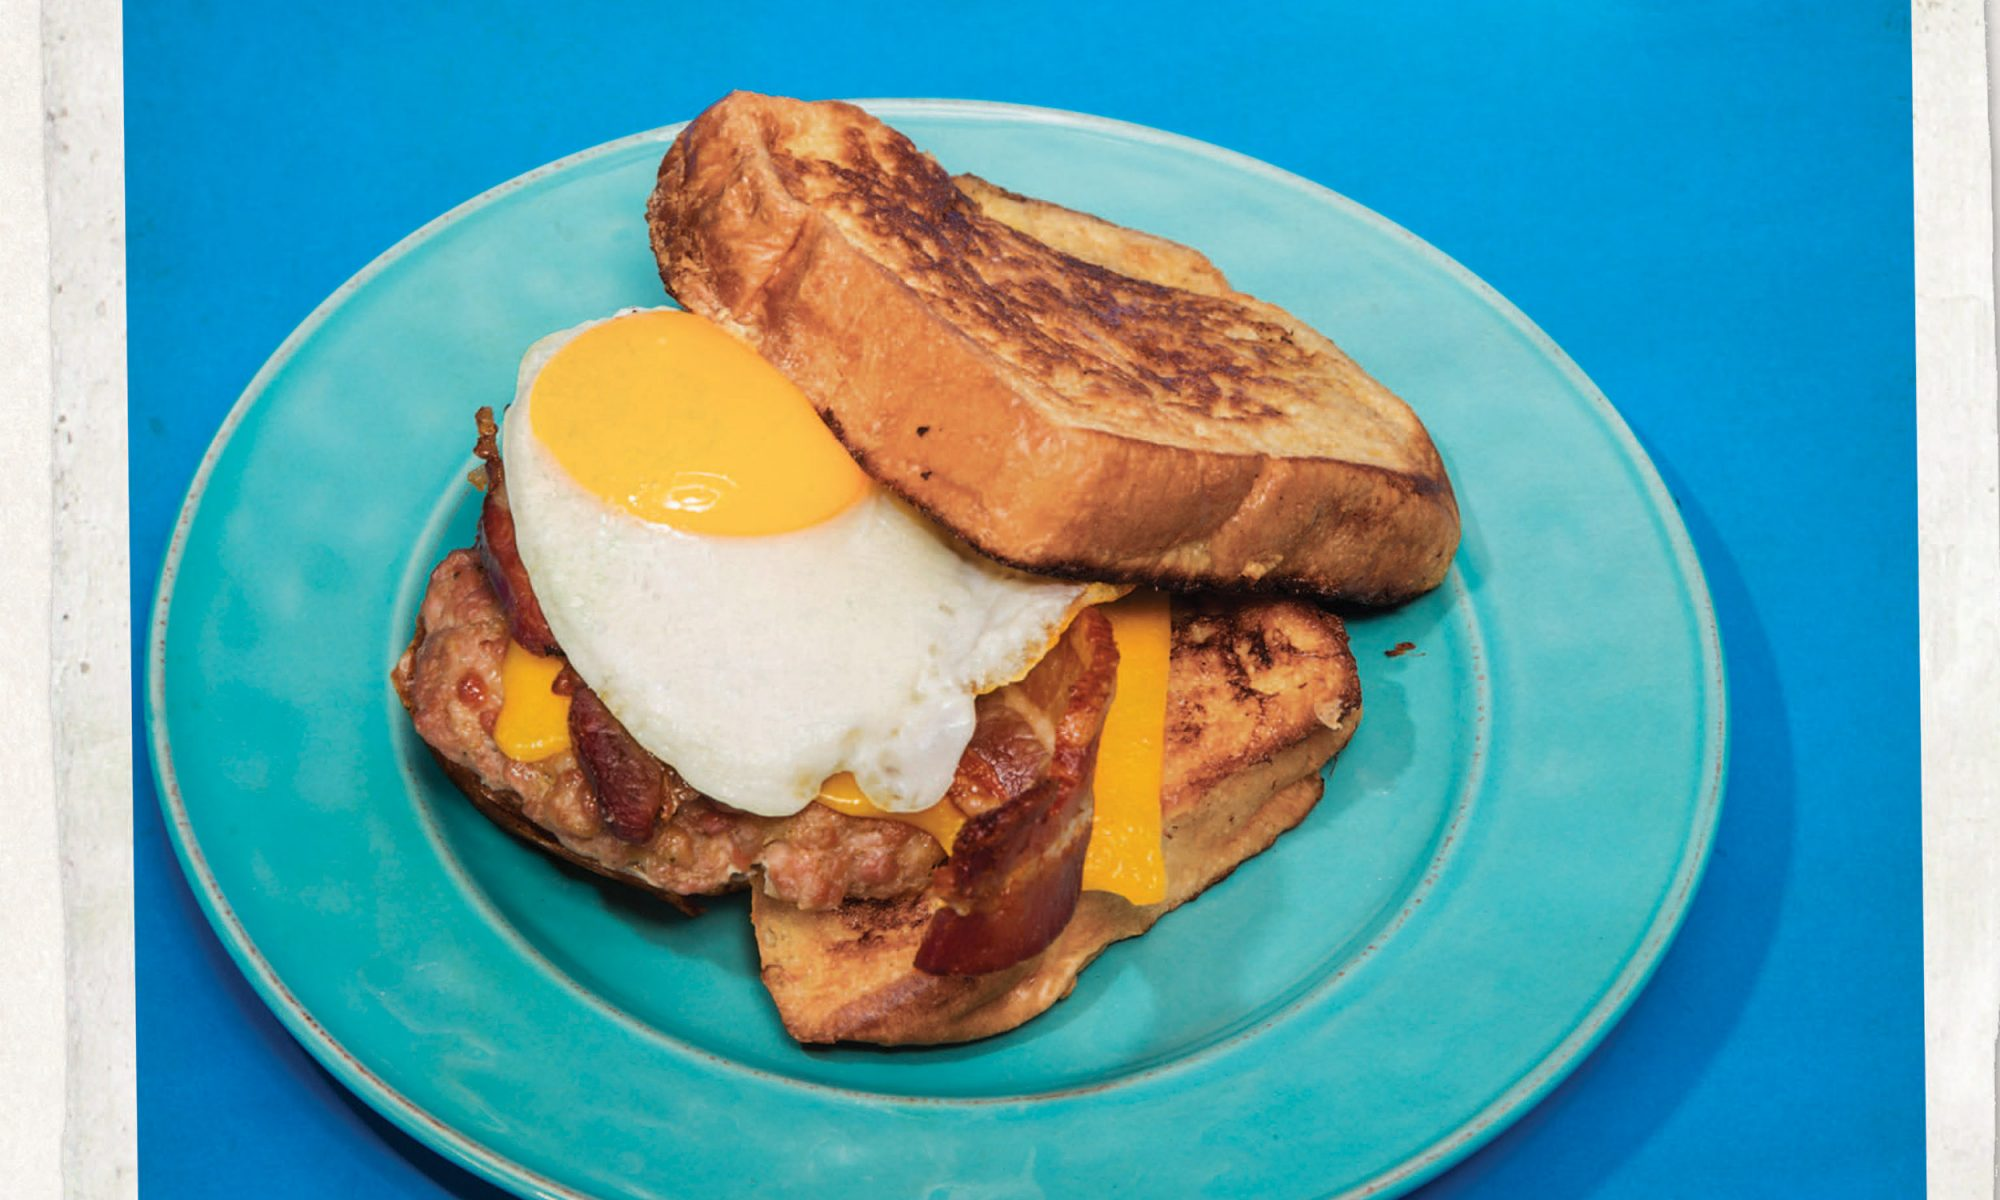 Make a 'Adventure Time'-Inspired French Toast Sandwich